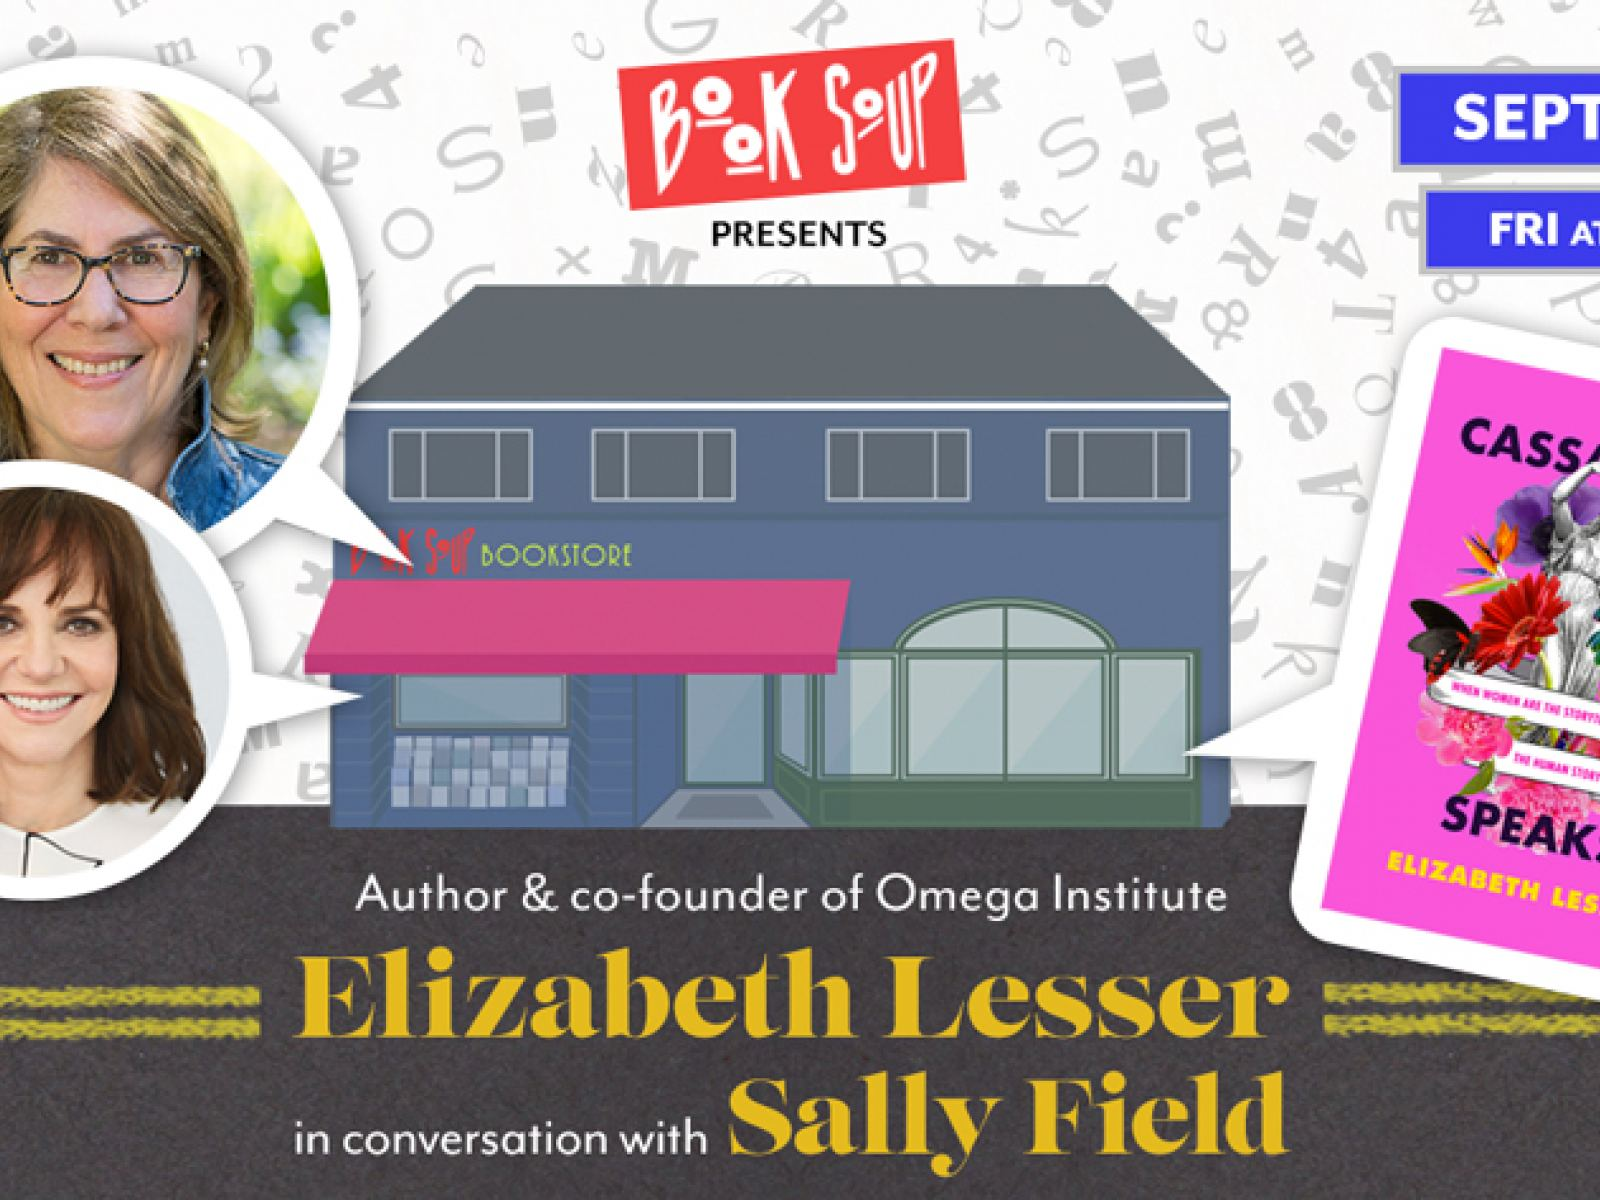 Main image for event titled Elizabeth Lesser, in conversation with Sally Field, discusses Cassandra Speaks: When Women Are the Storytellers, the Human Story Changes: by Book Soup